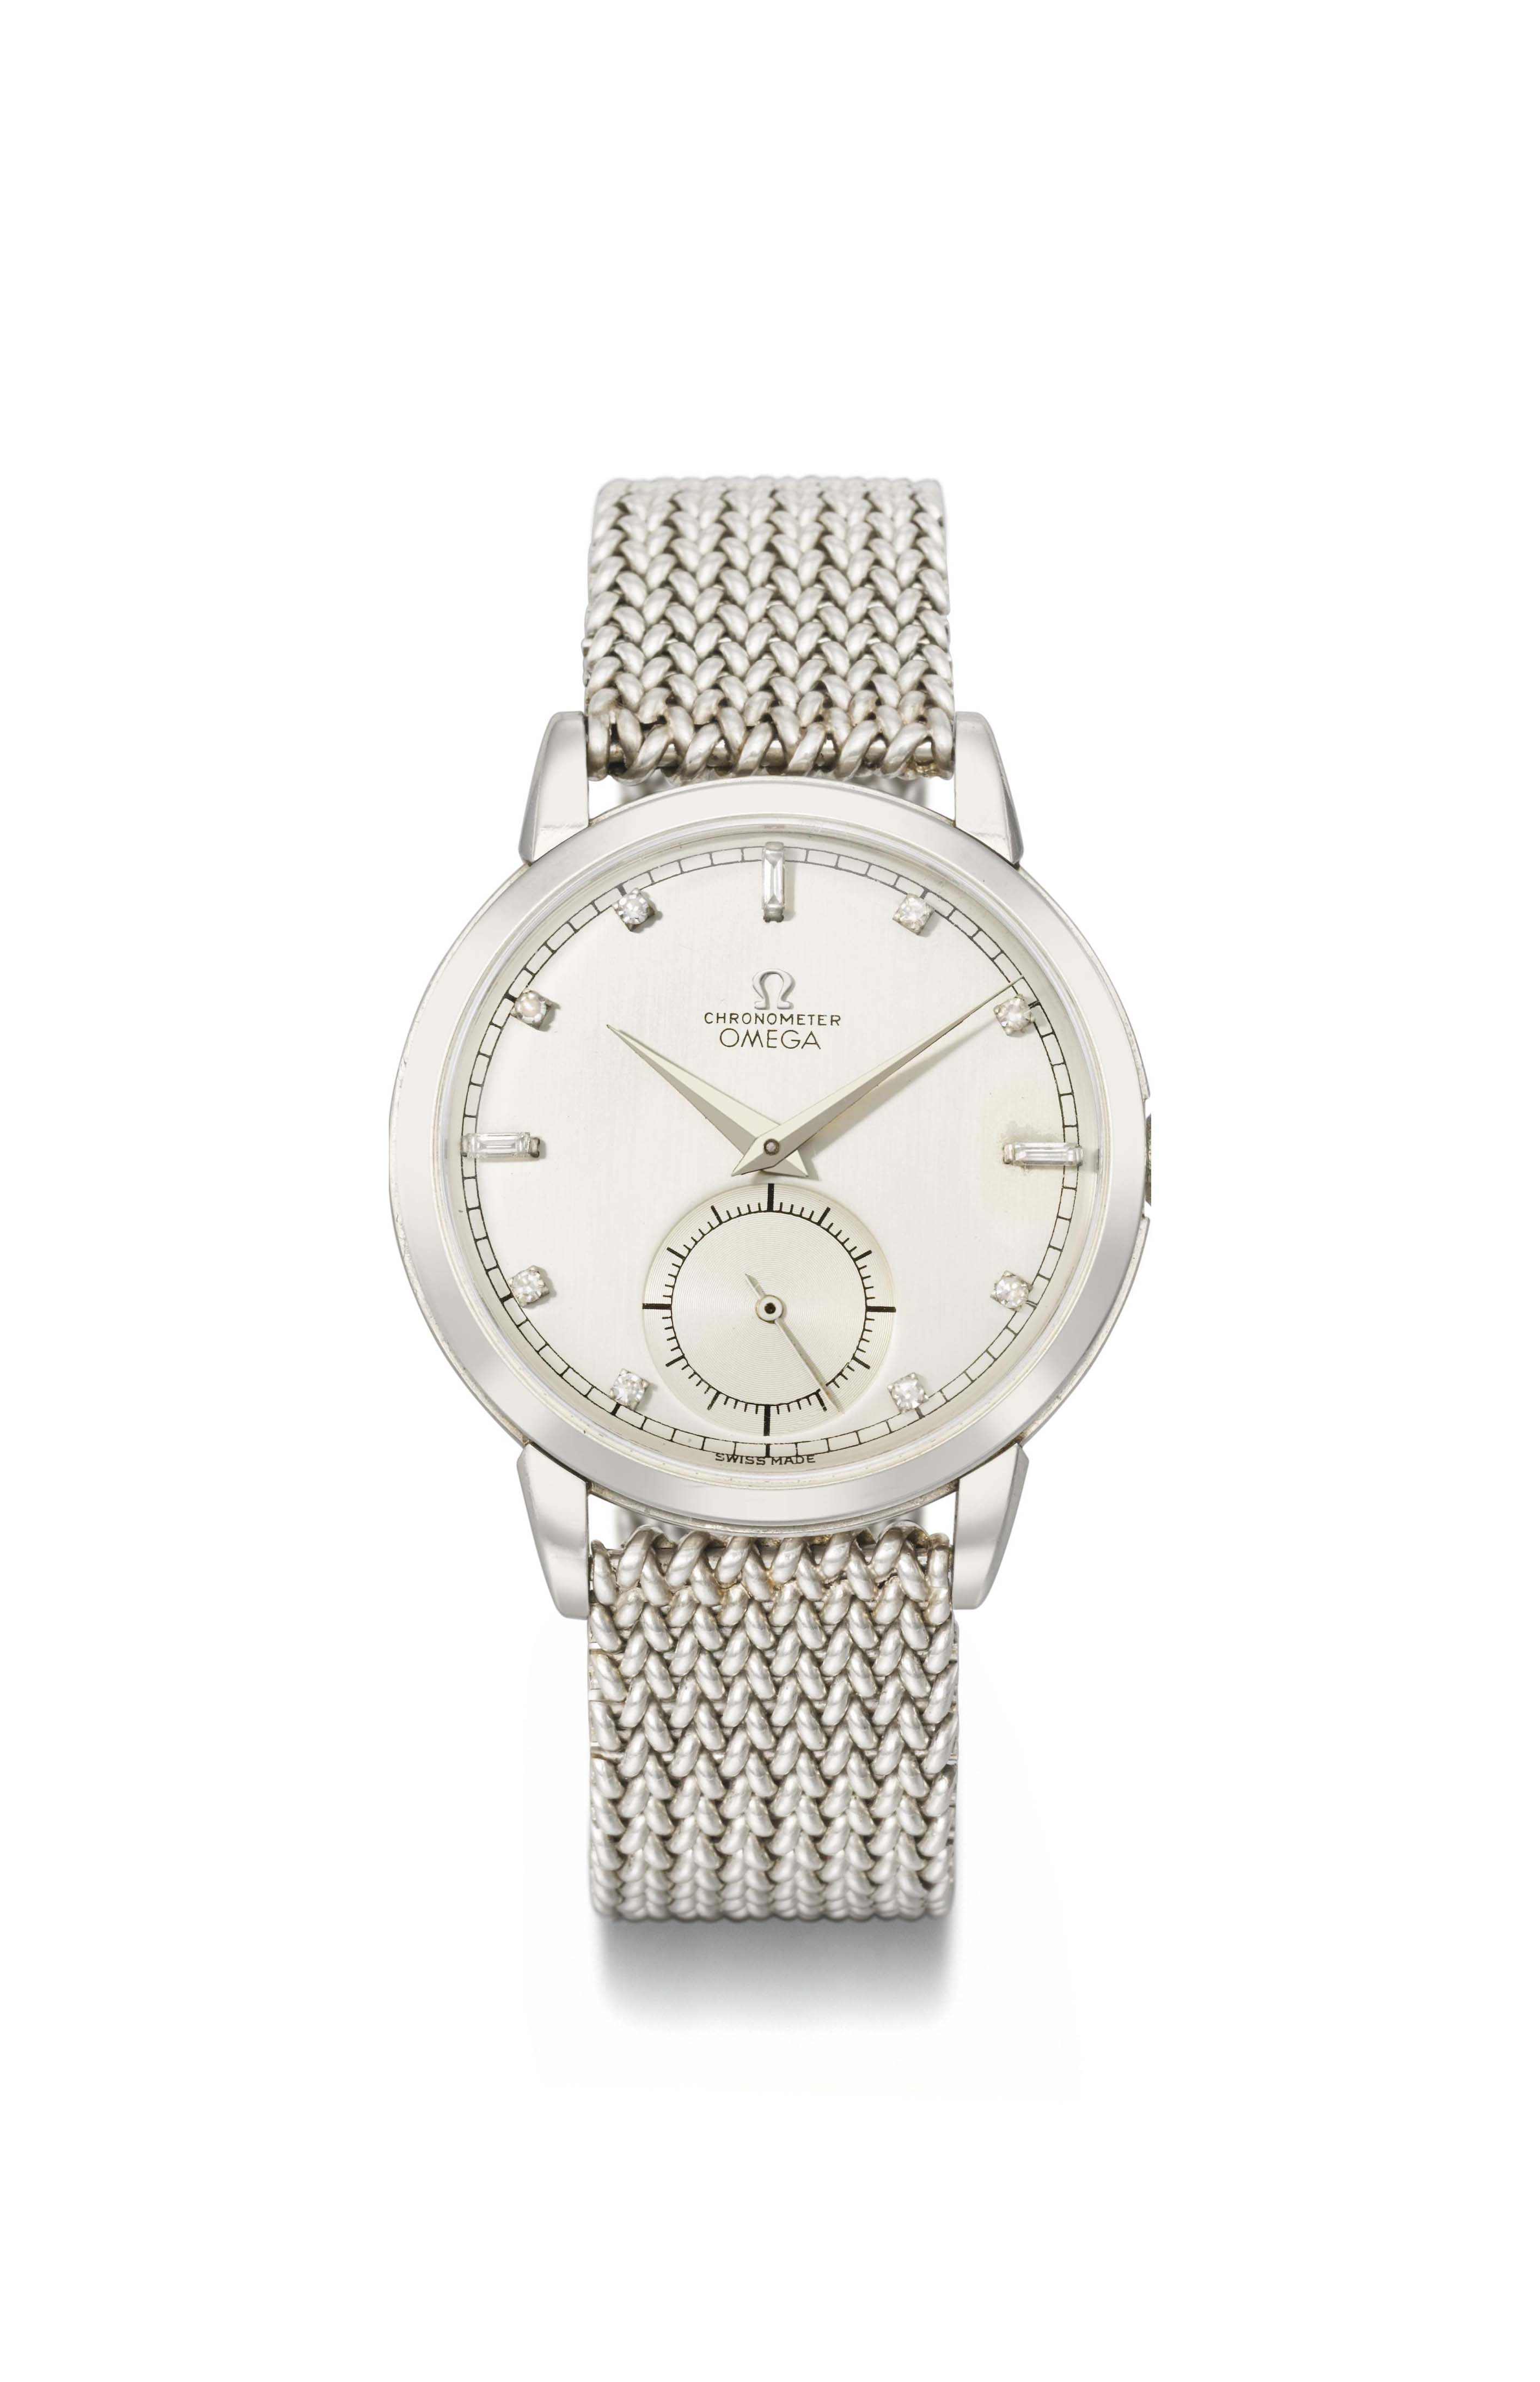 Omega. A very rare, large and attractive platinum and diamond-set chronometer wristwatch with bracelet